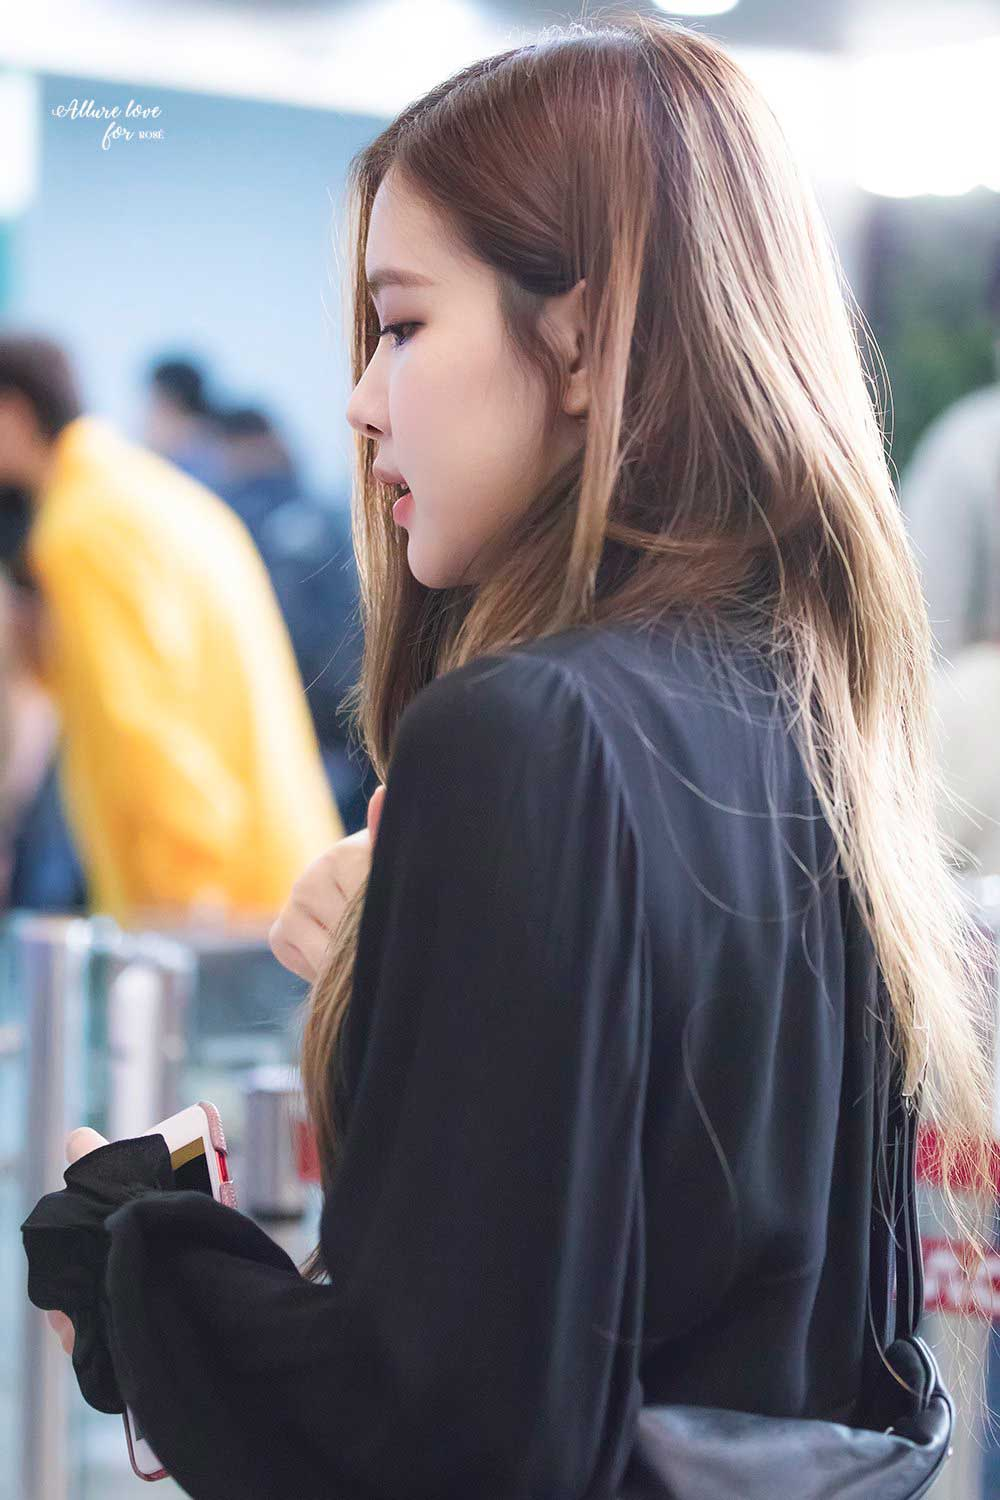 Blackpink Rose Airport Fashion 20 April 2018 Black dress outfit